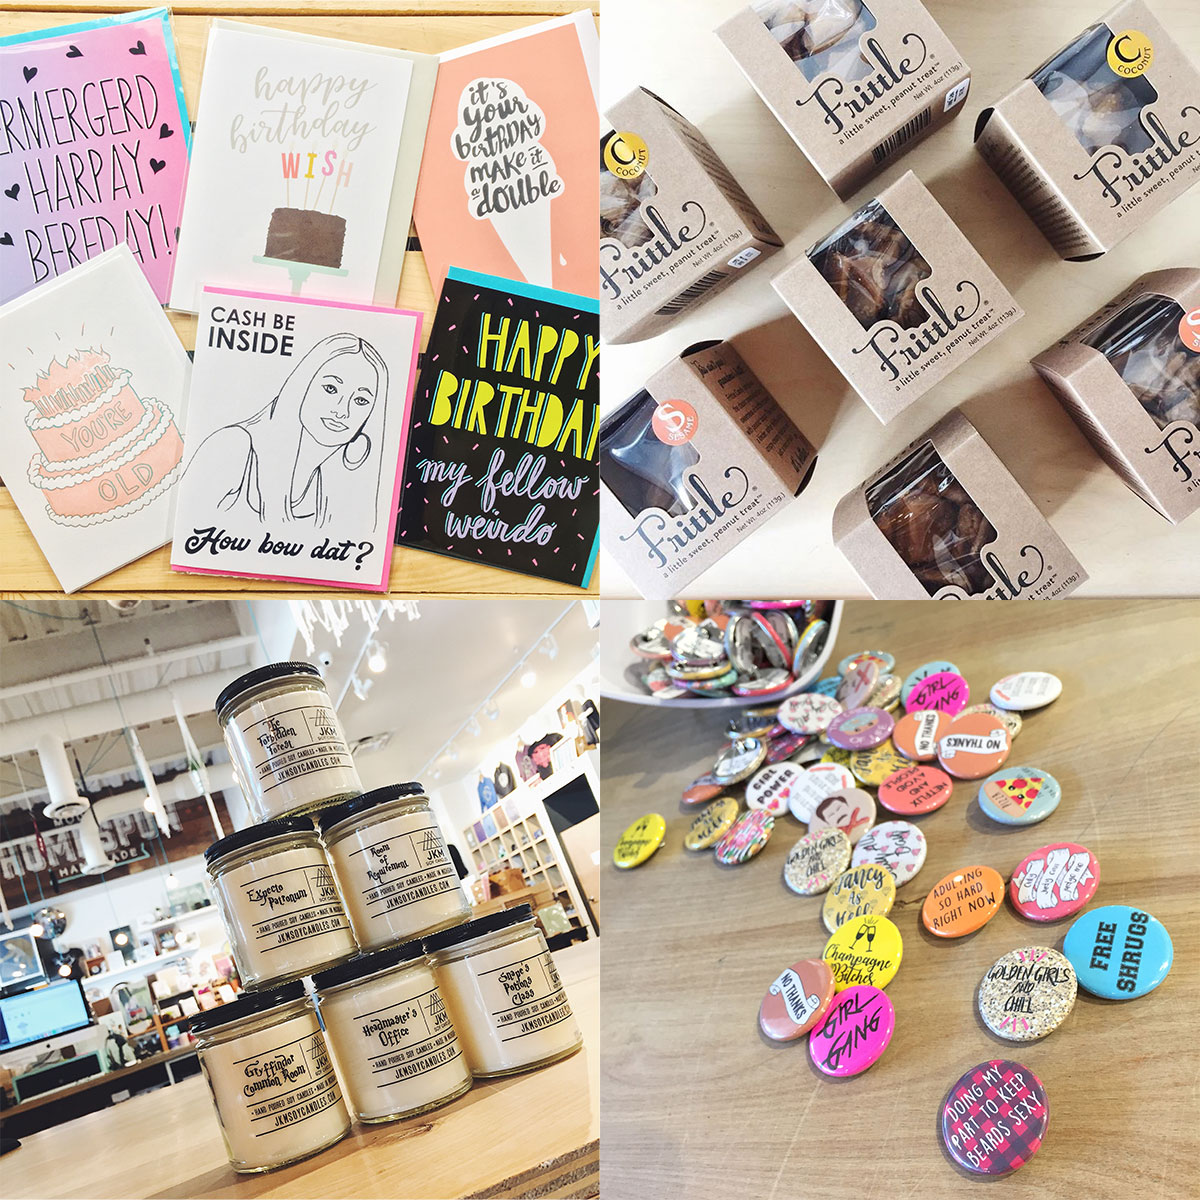 ICYMI April 13 shop handmade cards, artisanal foods, and novelties at Homespun: Modern Handmade